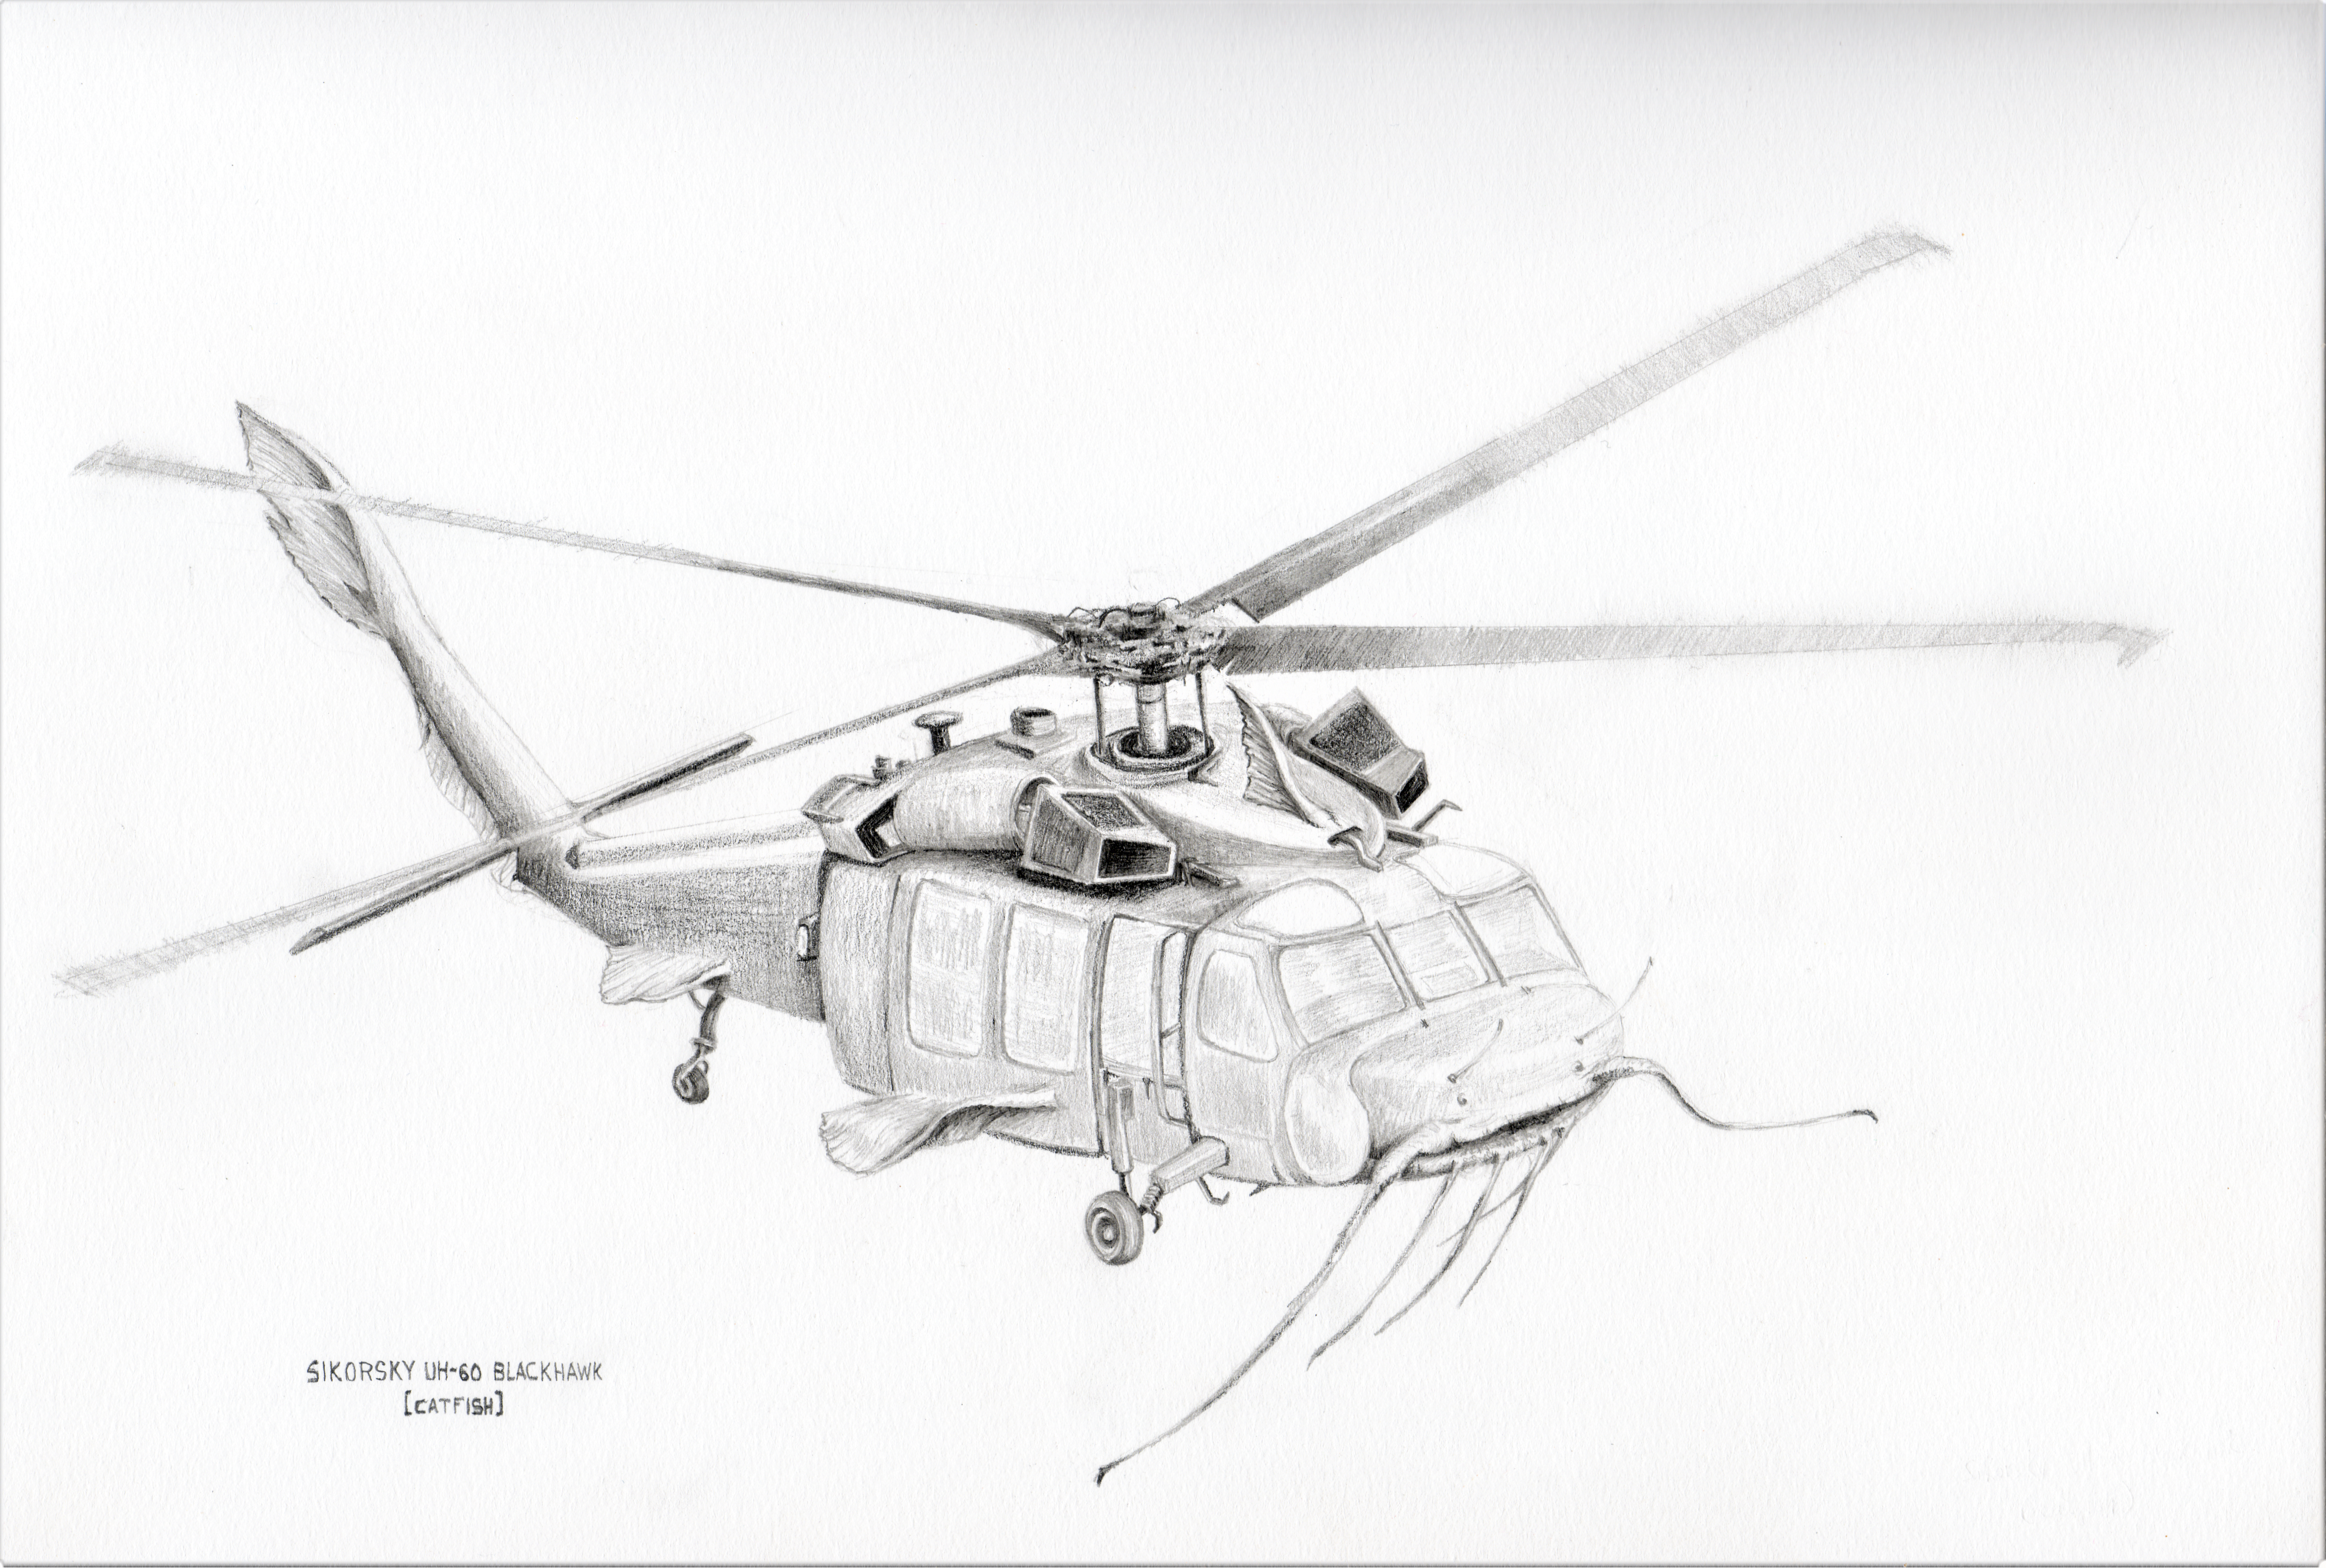 SIKORSKY UH-60 BLACKHAWK (CATFISH)